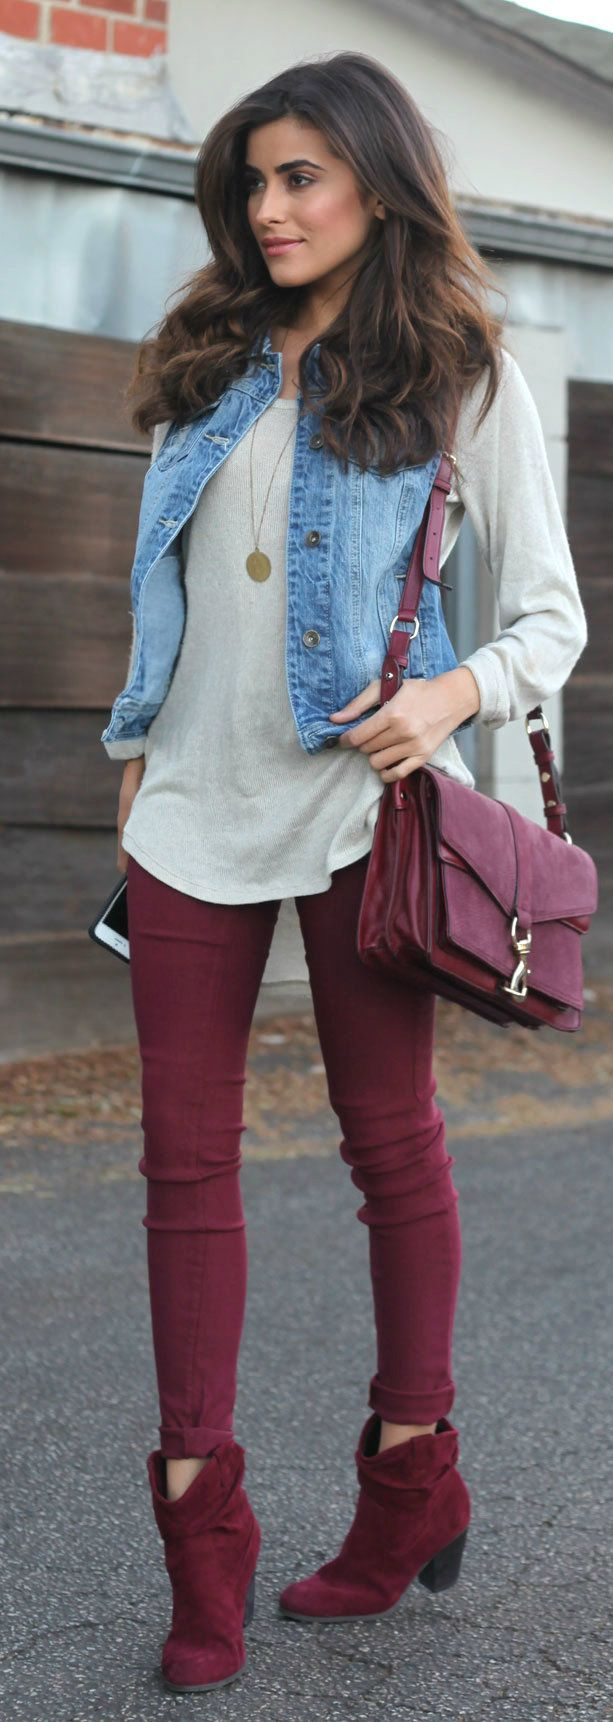 25 best ideas about oxblood pants on pinterest burgundy jeans maroon jeans outfit and wine pants - The splendid transformation of a vineyard in burgundy ...